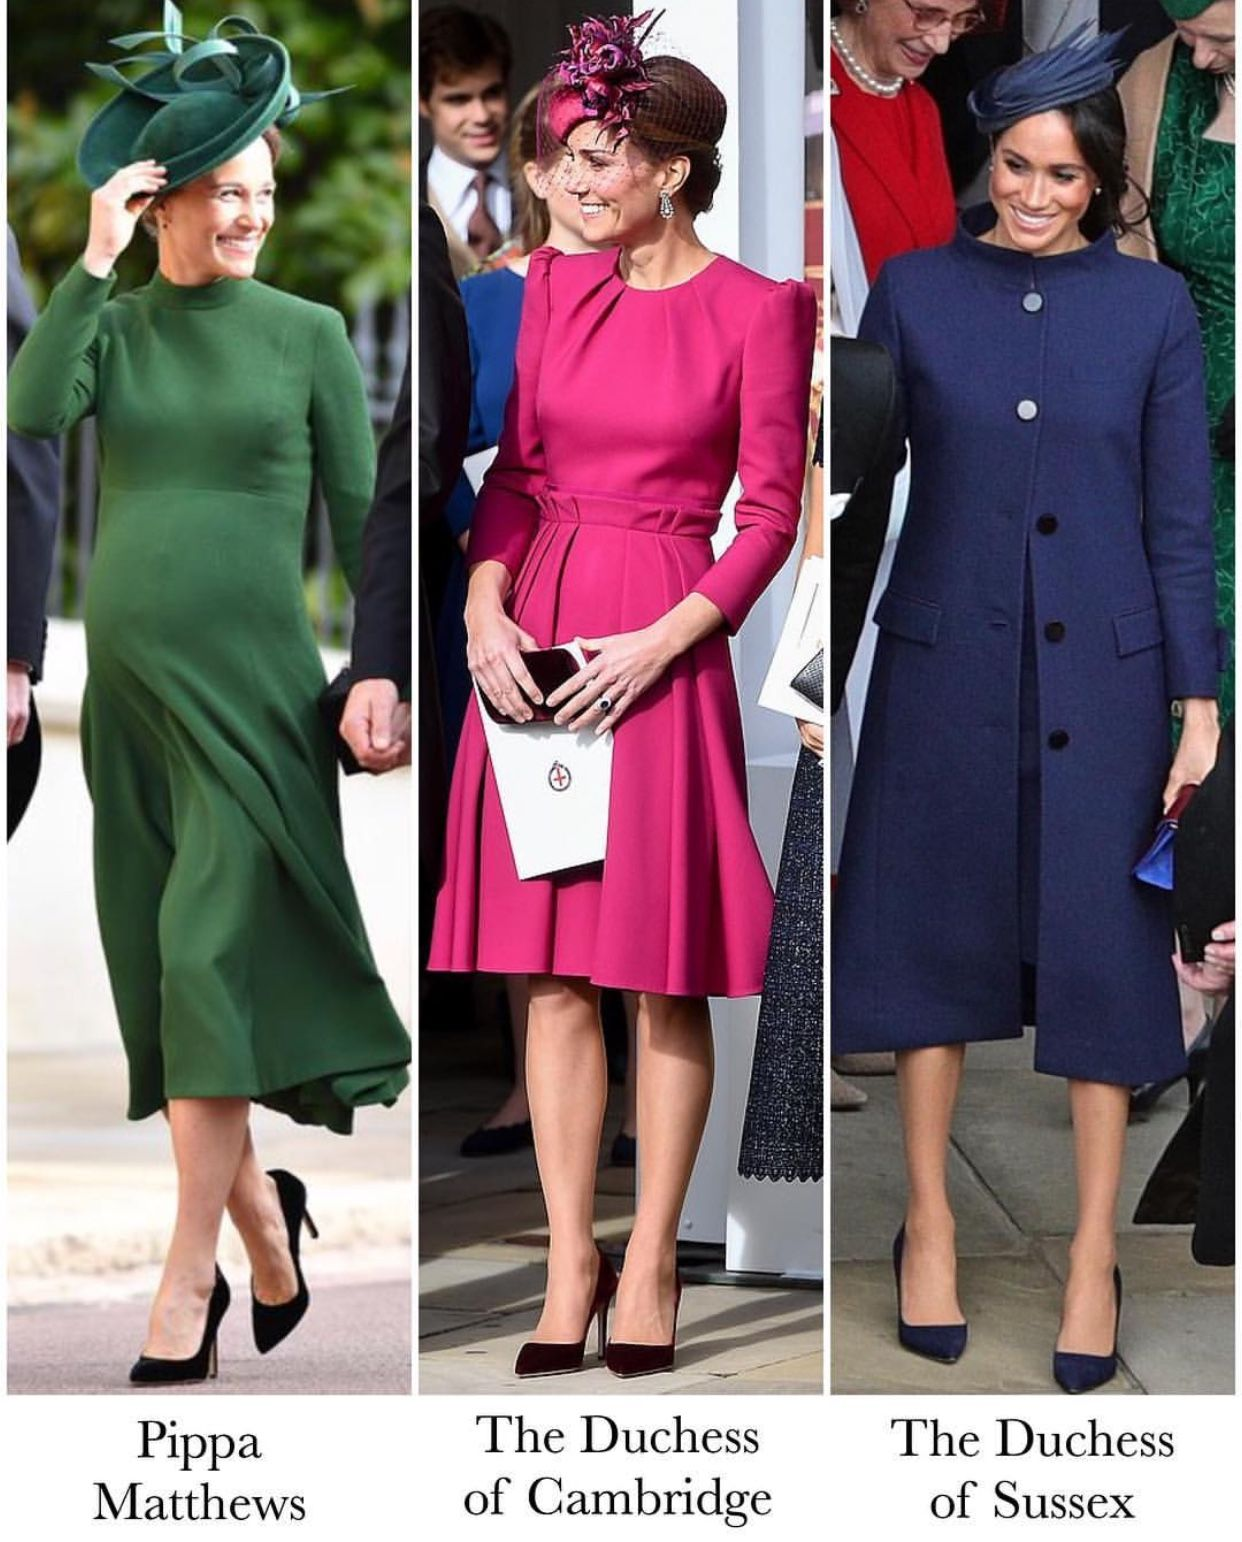 Pin By Vicki On Catherine And William 2018 Royal Wedding Guests Outfits Wedding Guest Outfit Fall Wedding Attire Guest [ 1542 x 1242 Pixel ]